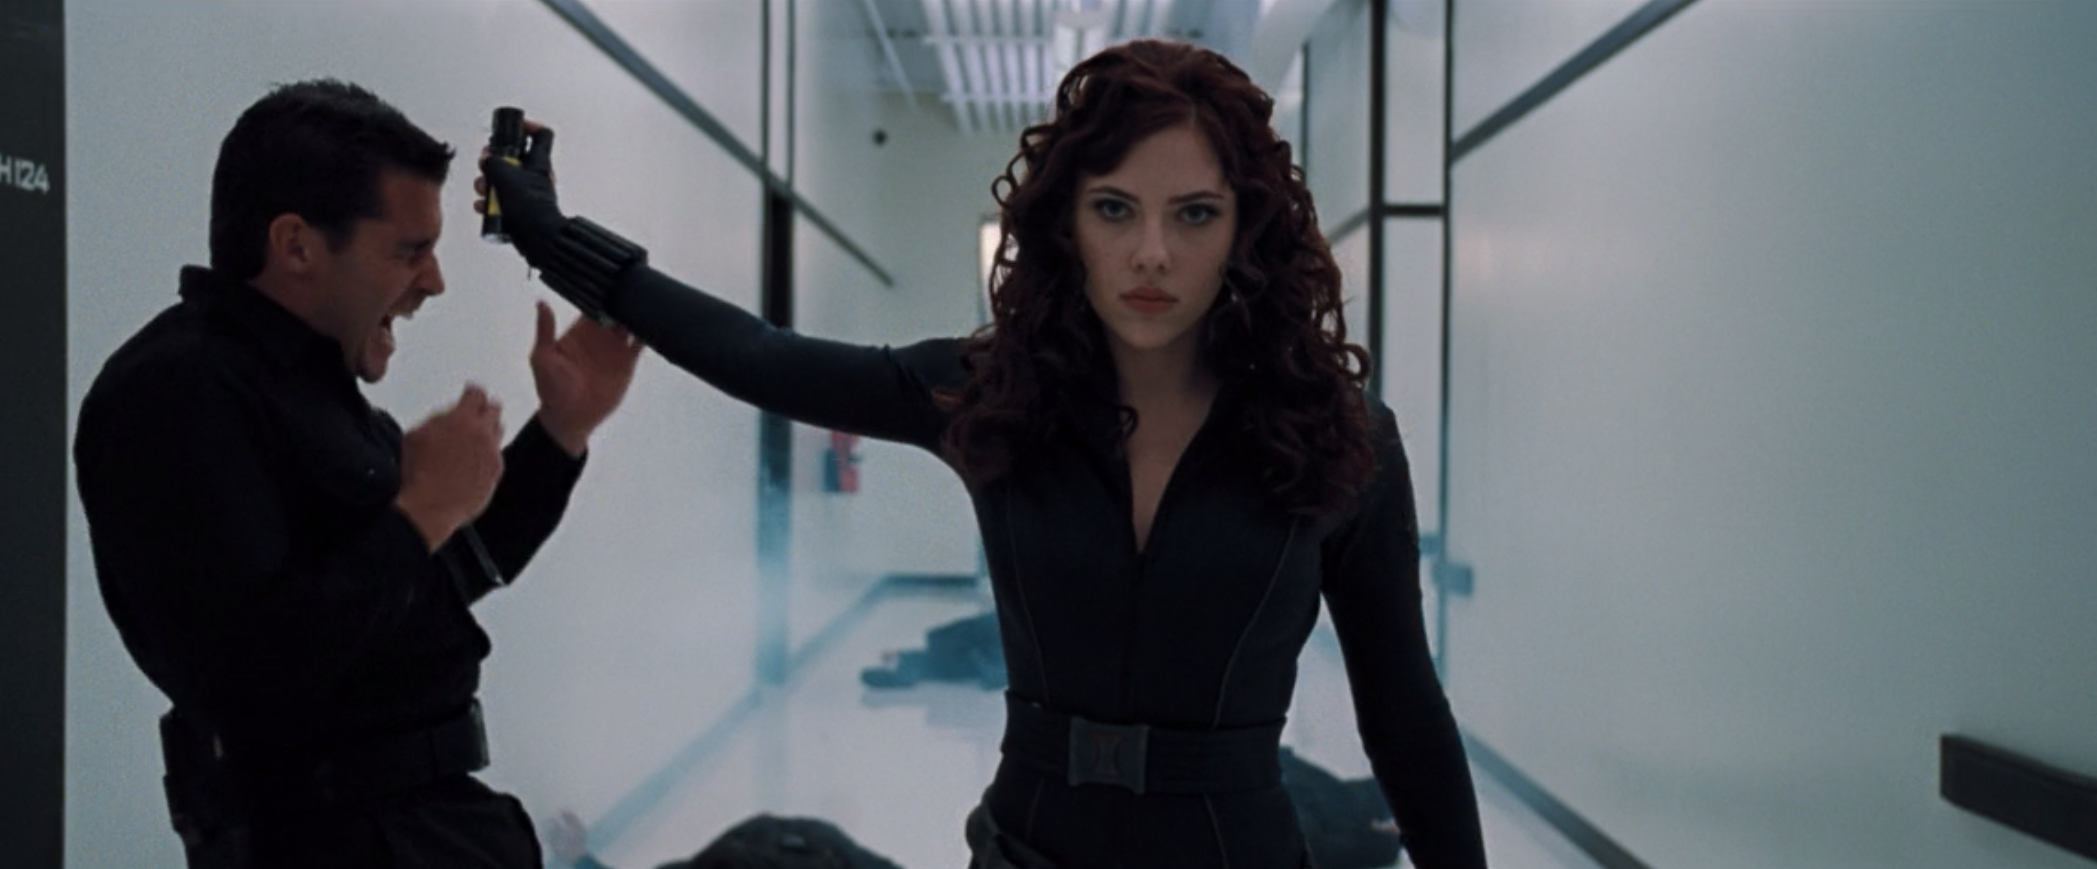 Natasha Romanoff sprays mace into the face of a bad guy who was trying to grab her.